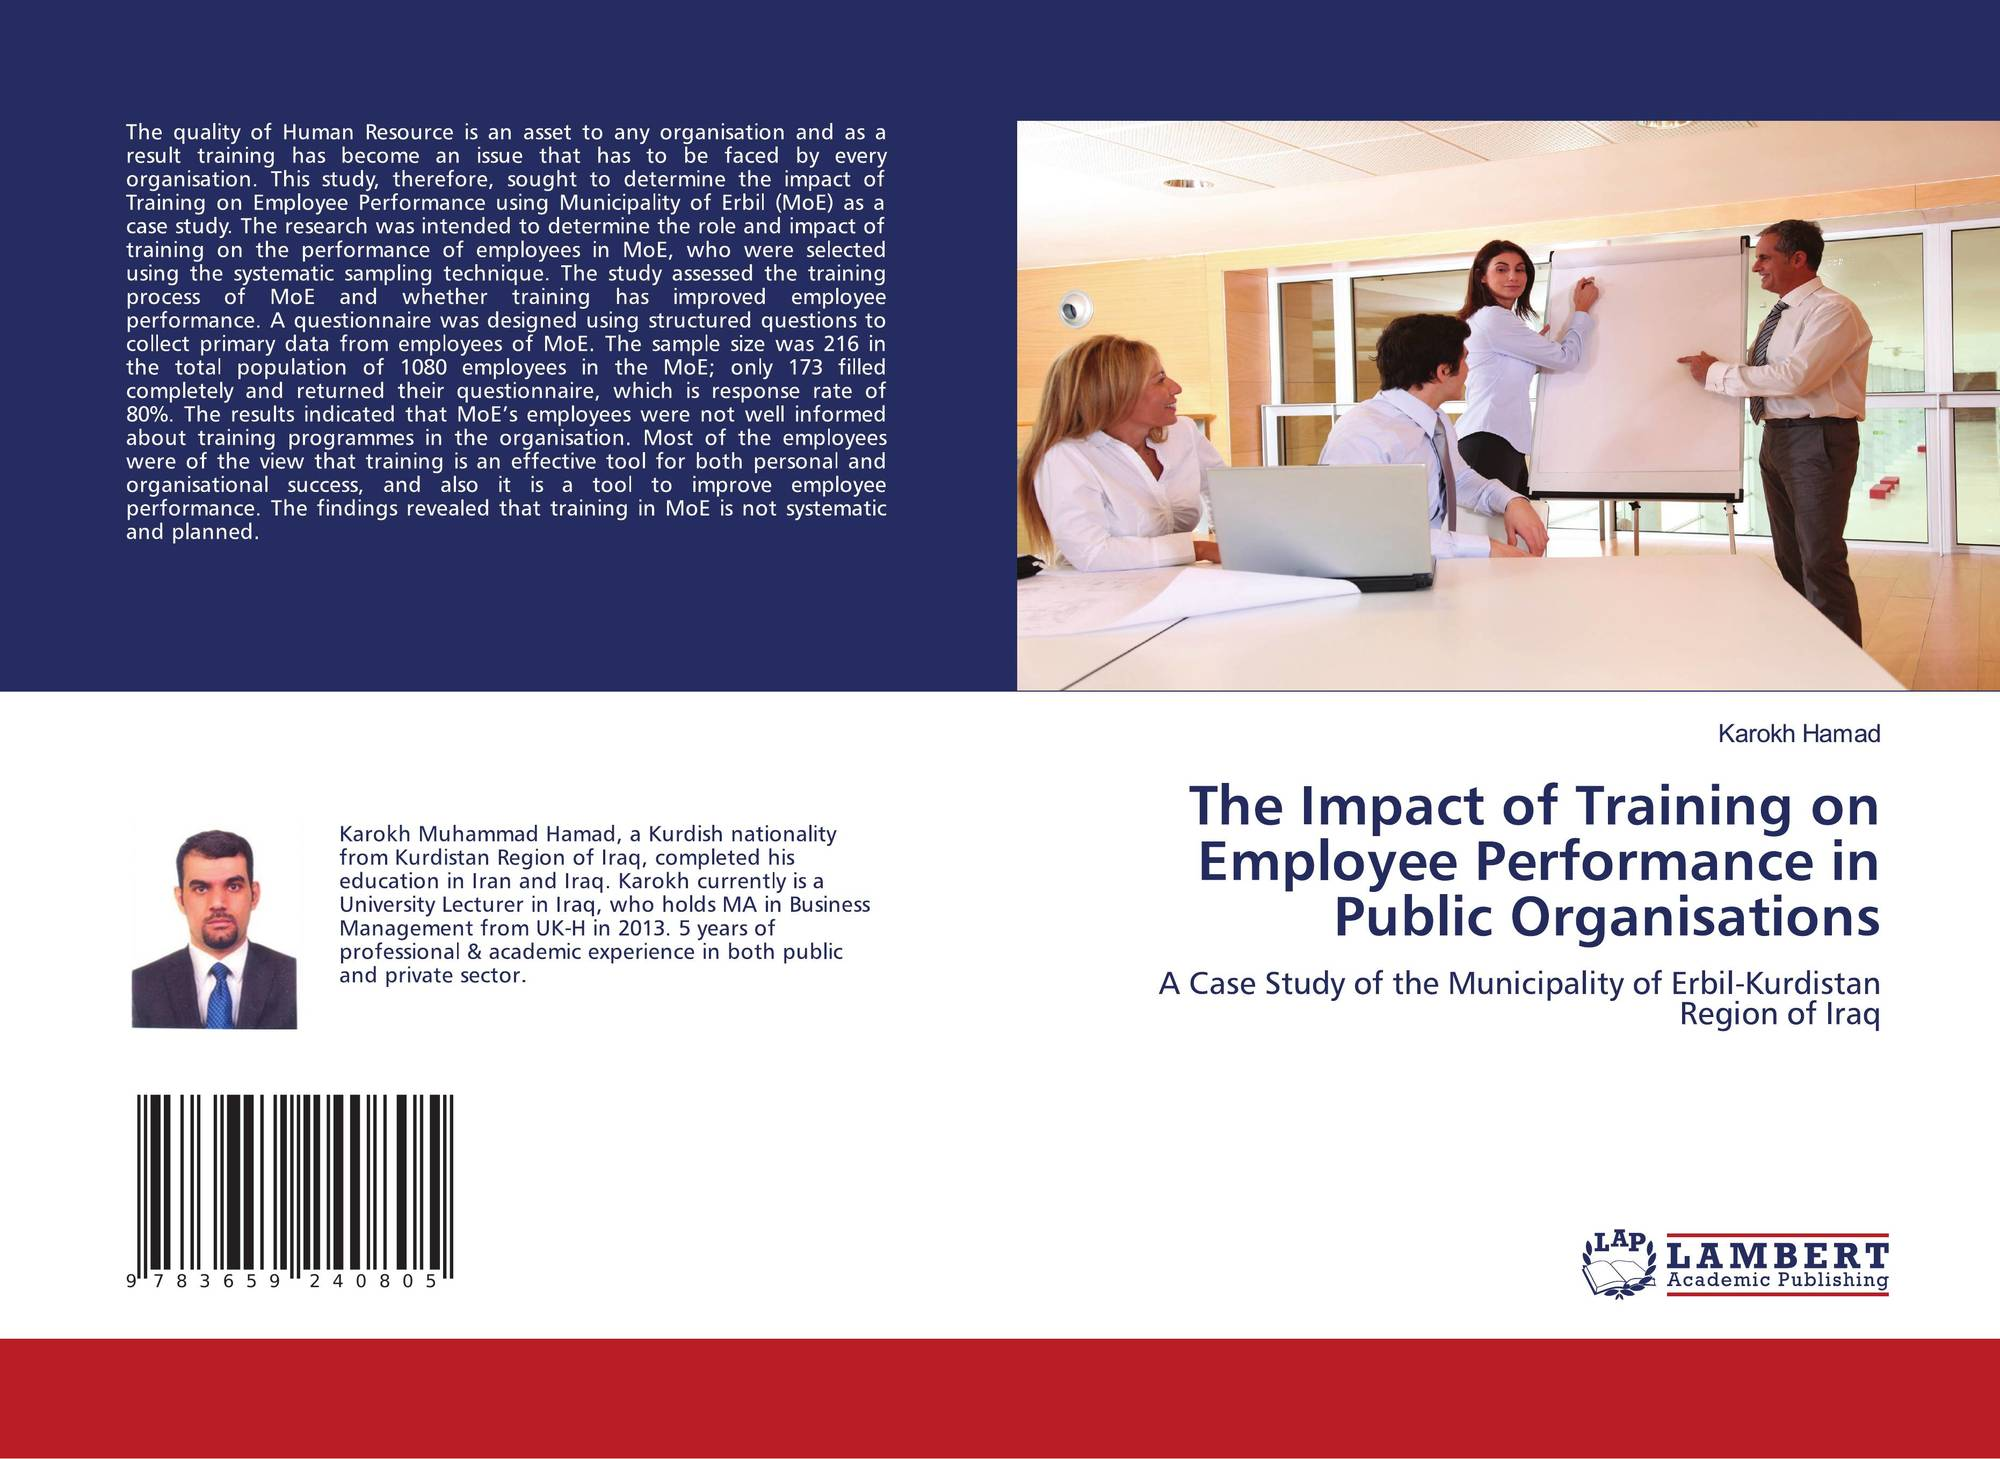 effective training 3 essay How to create an effective training program: 8 steps to success march 19, 2014 august 27, 2018 jeffrey dalto elearning , training nearly everyone recognizes the value and benefits of workforce training.